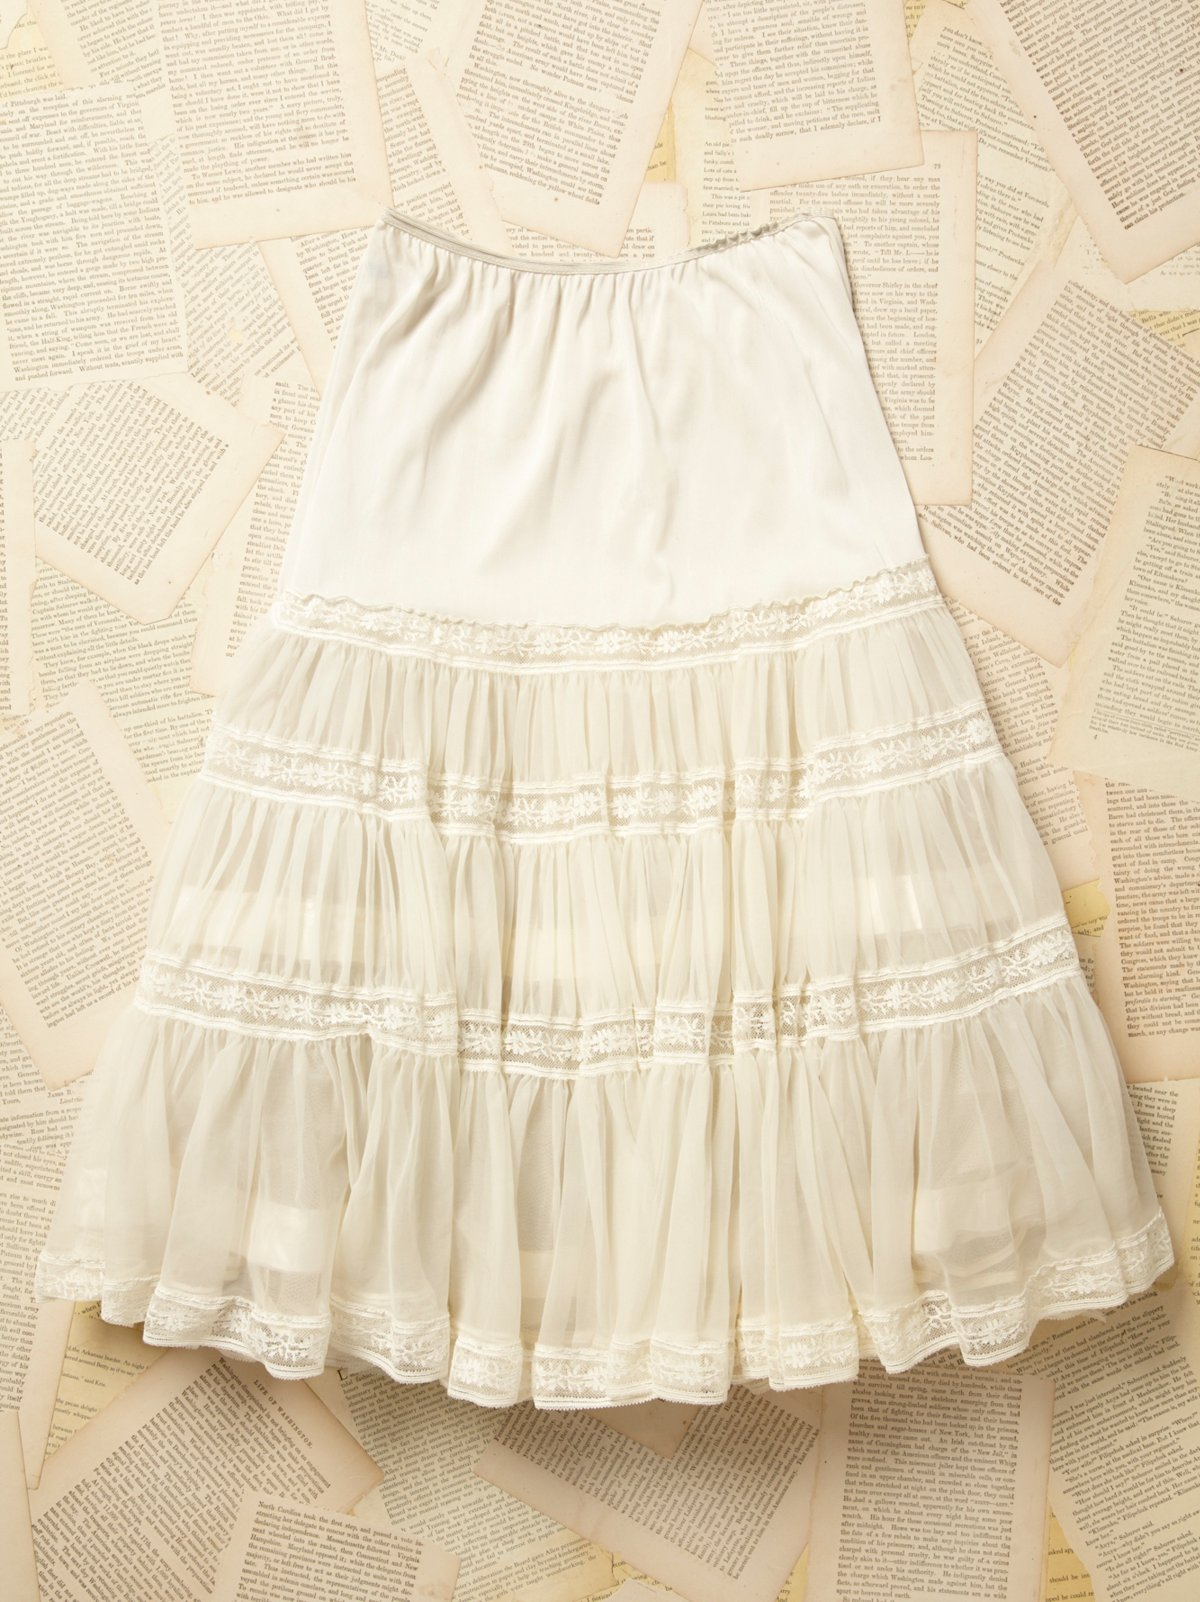 Vintage 1950s Lace Tulle Skirt